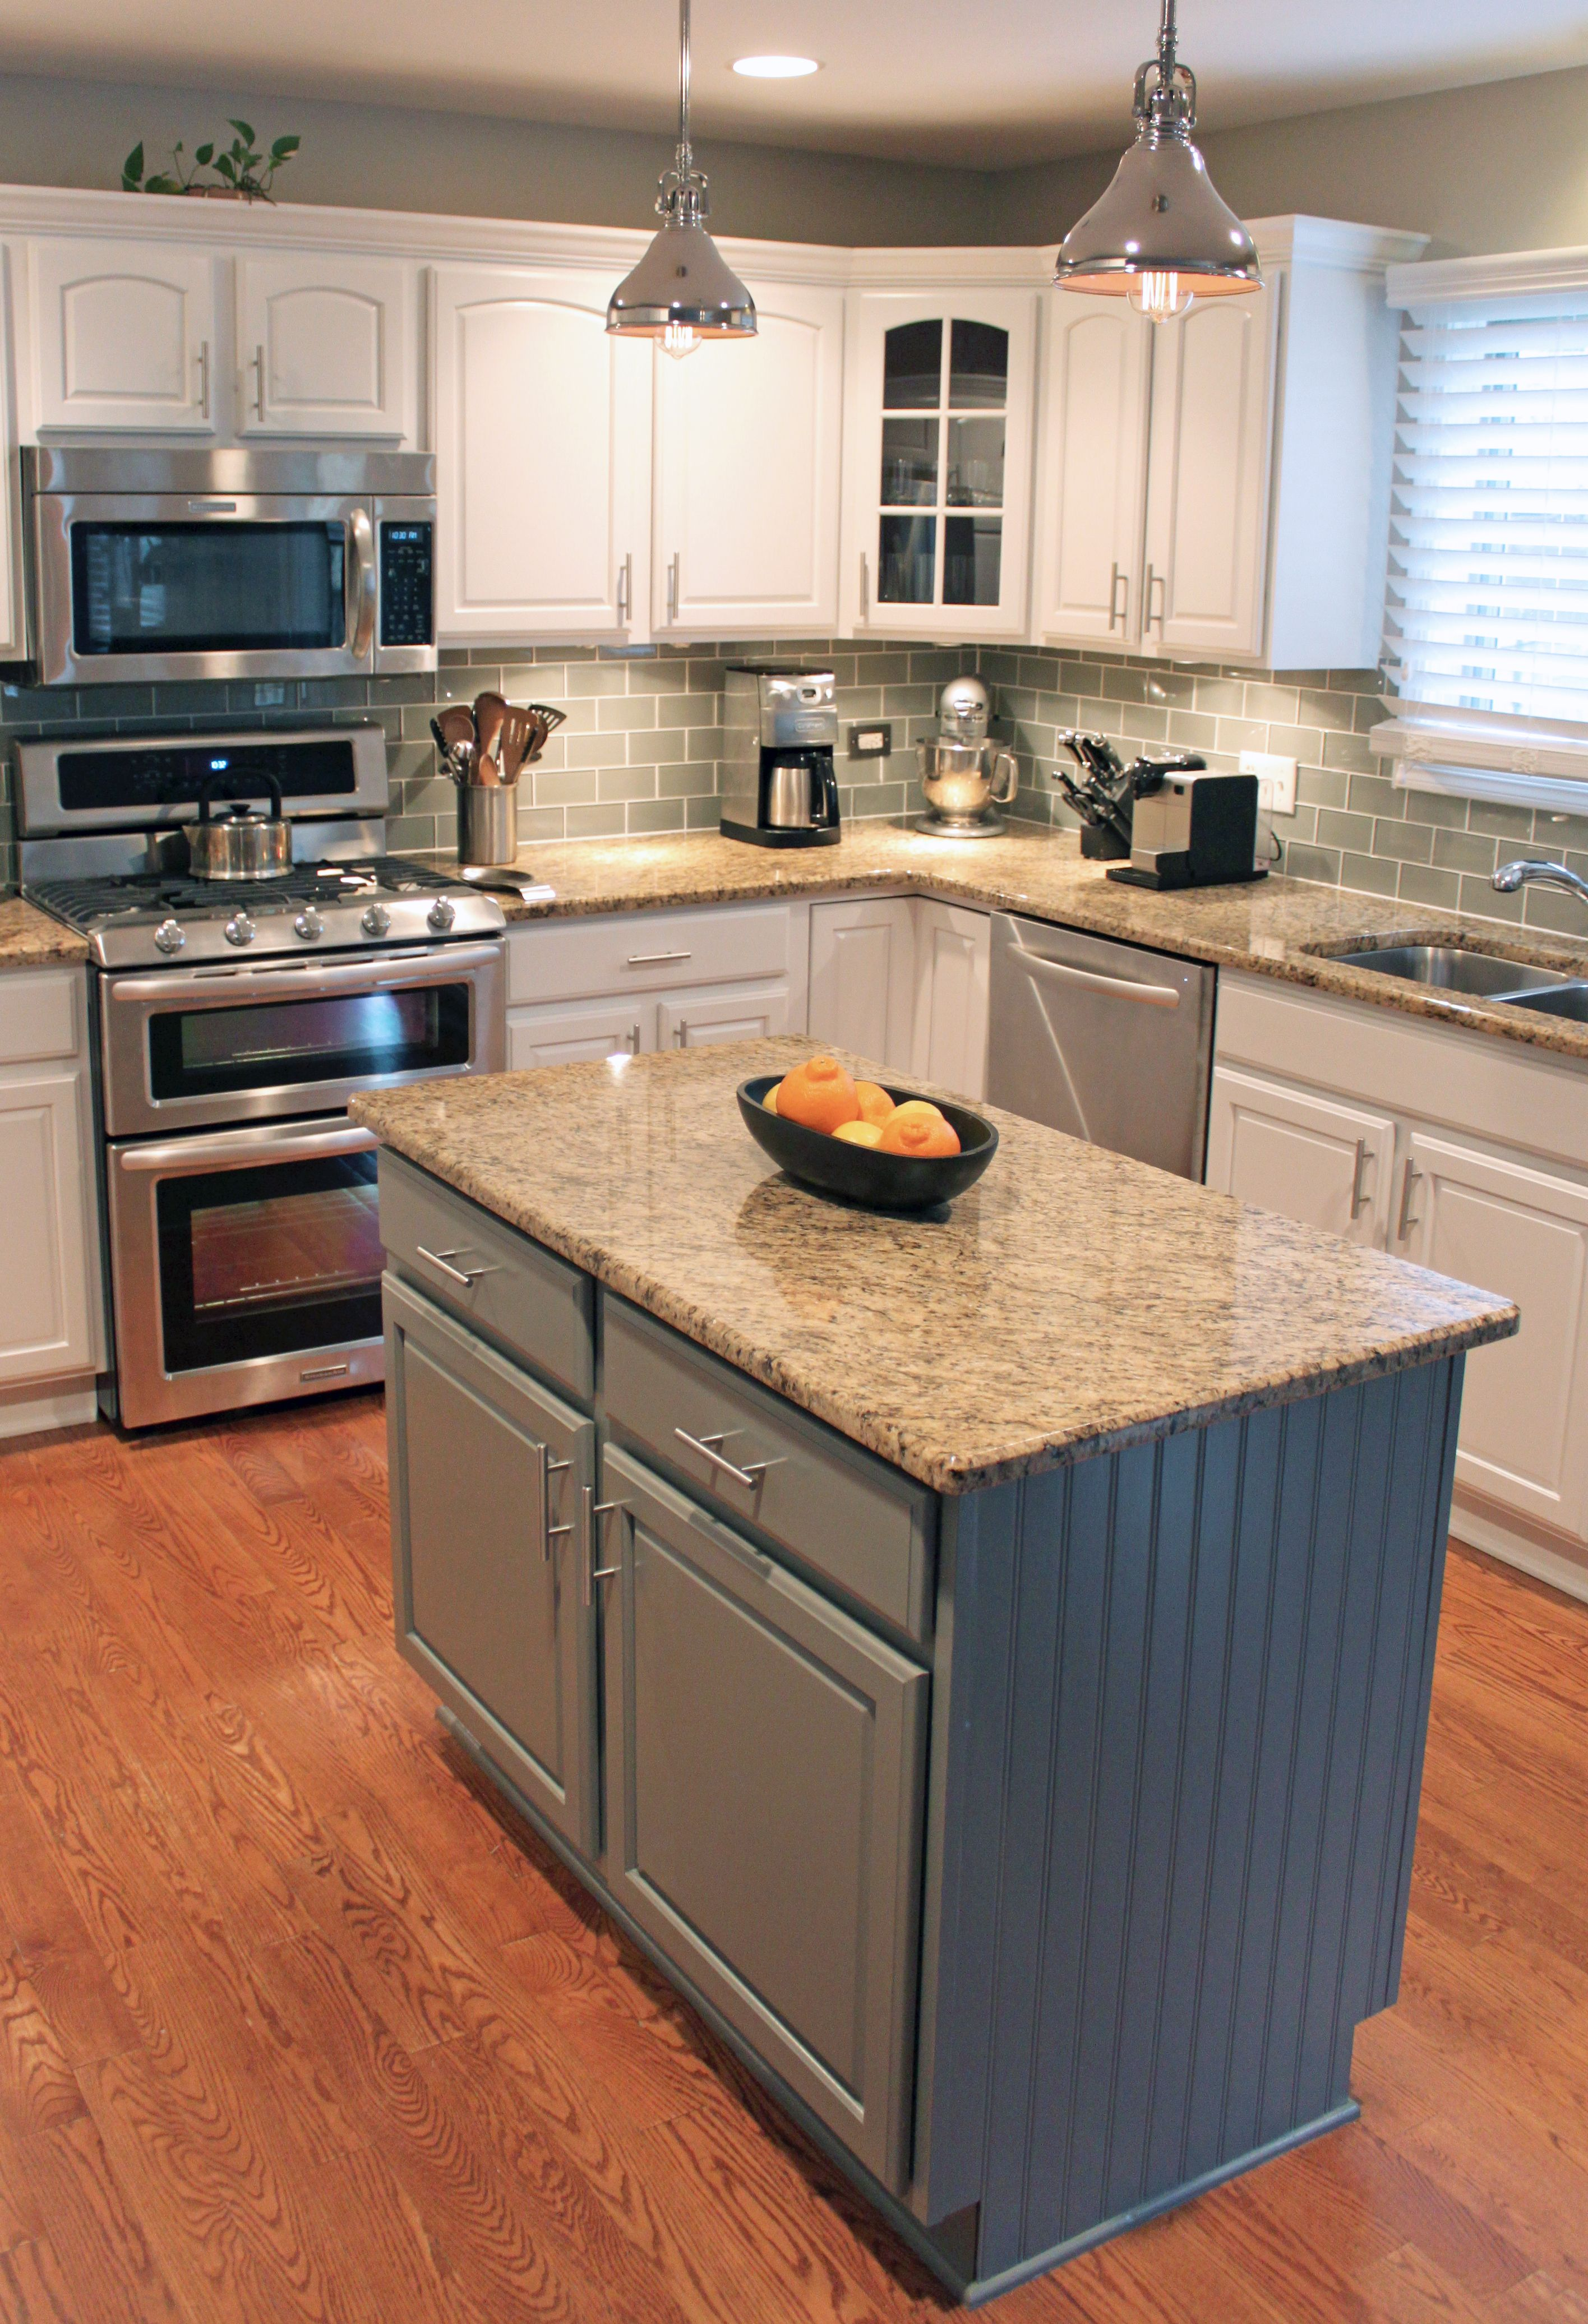 kitchen remodel with painted cabinets and island new backsplash new stainless steel appliances on kitchen remodel appliances id=35567